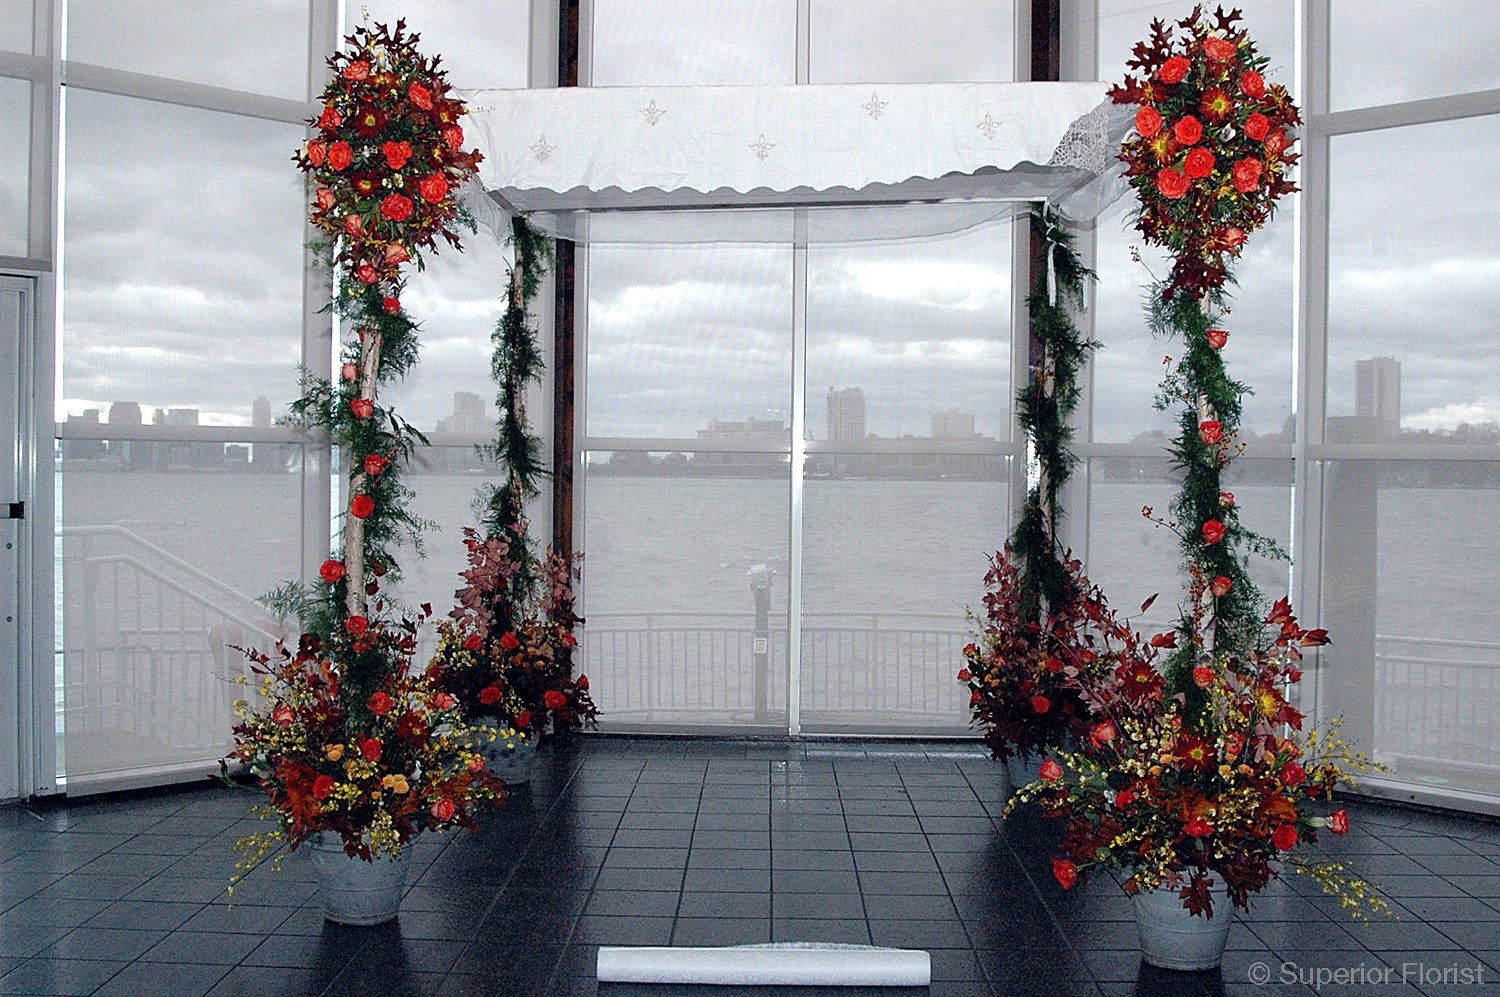 Superior Florist – Wedding Ceremony: Birch pole chuppah with family's personal chuppah top. Garland of greenery on poles, assortment of autumn flowers. The Lighthouse at Chelsea Piers, NYC.